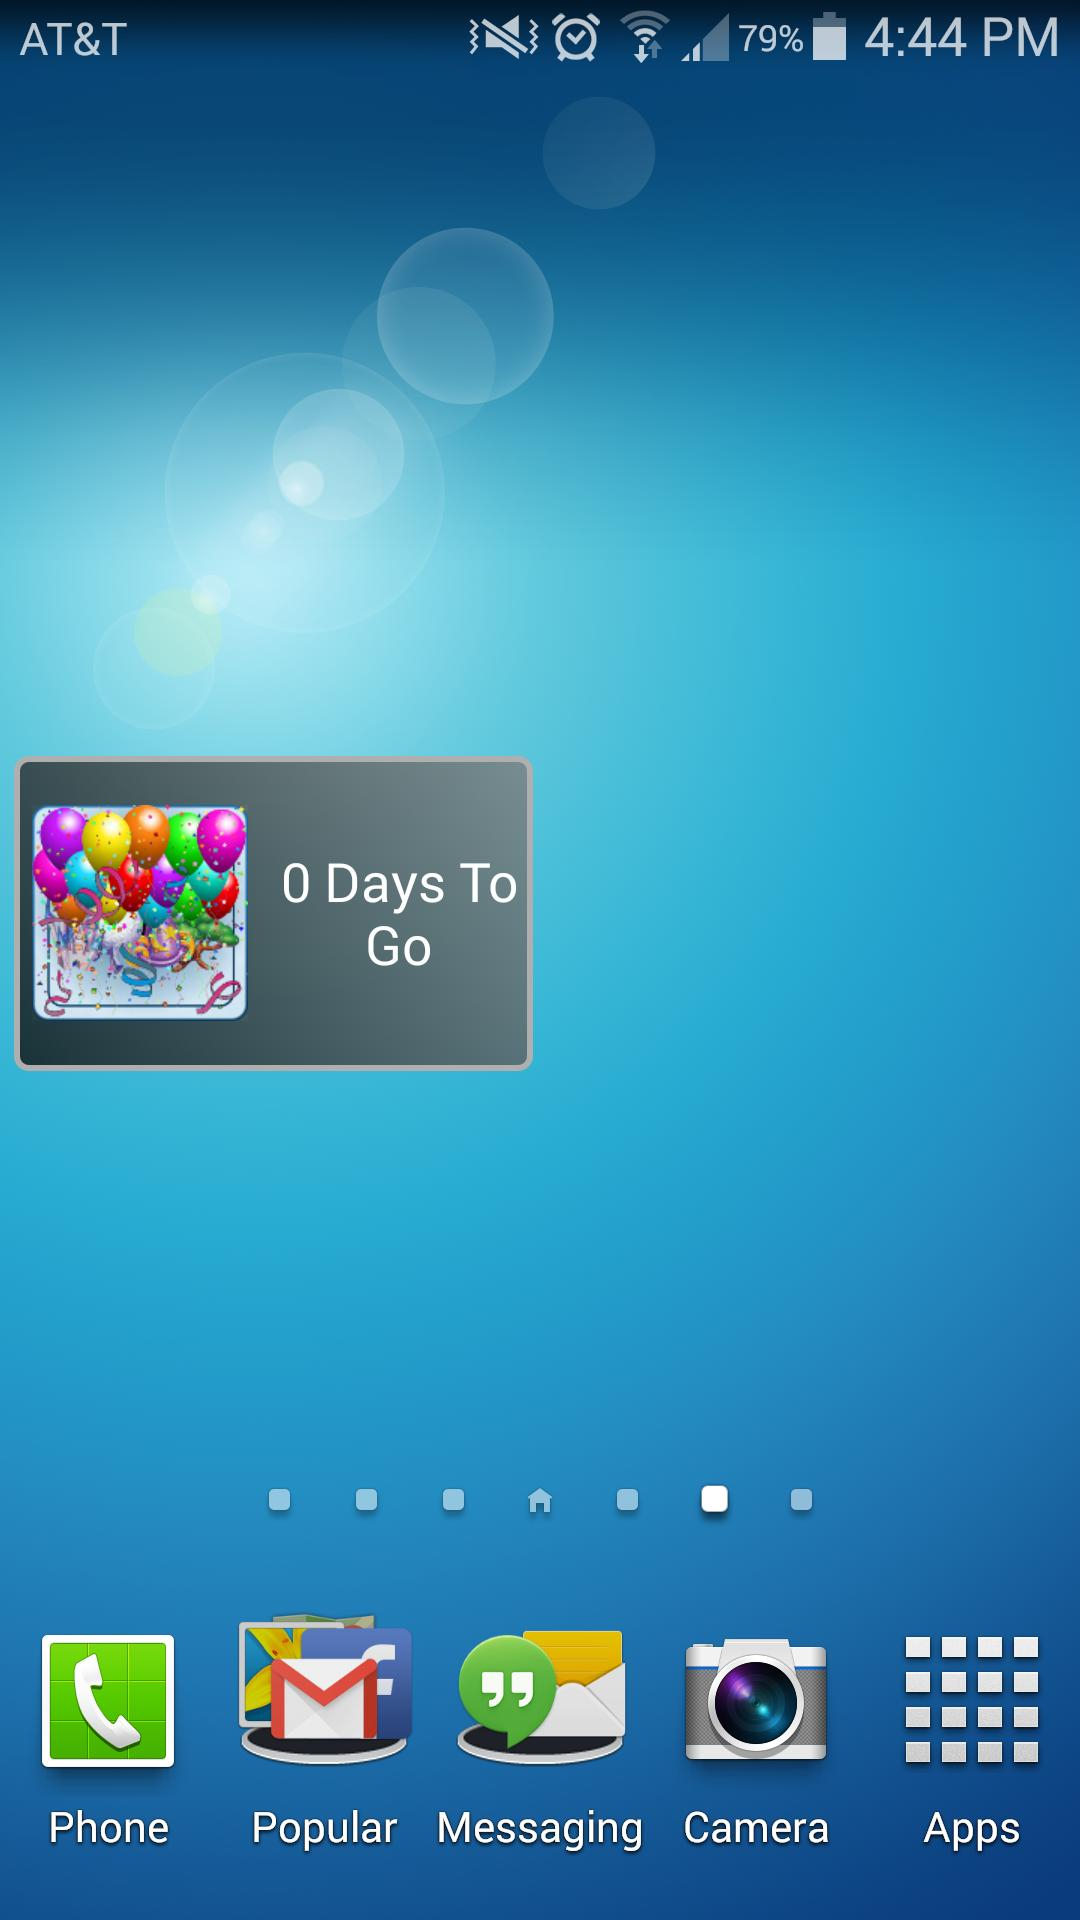 Unoffic Countdown 4 Disney Wdw For Android  Apk Download intended for Disney Countdown Widget